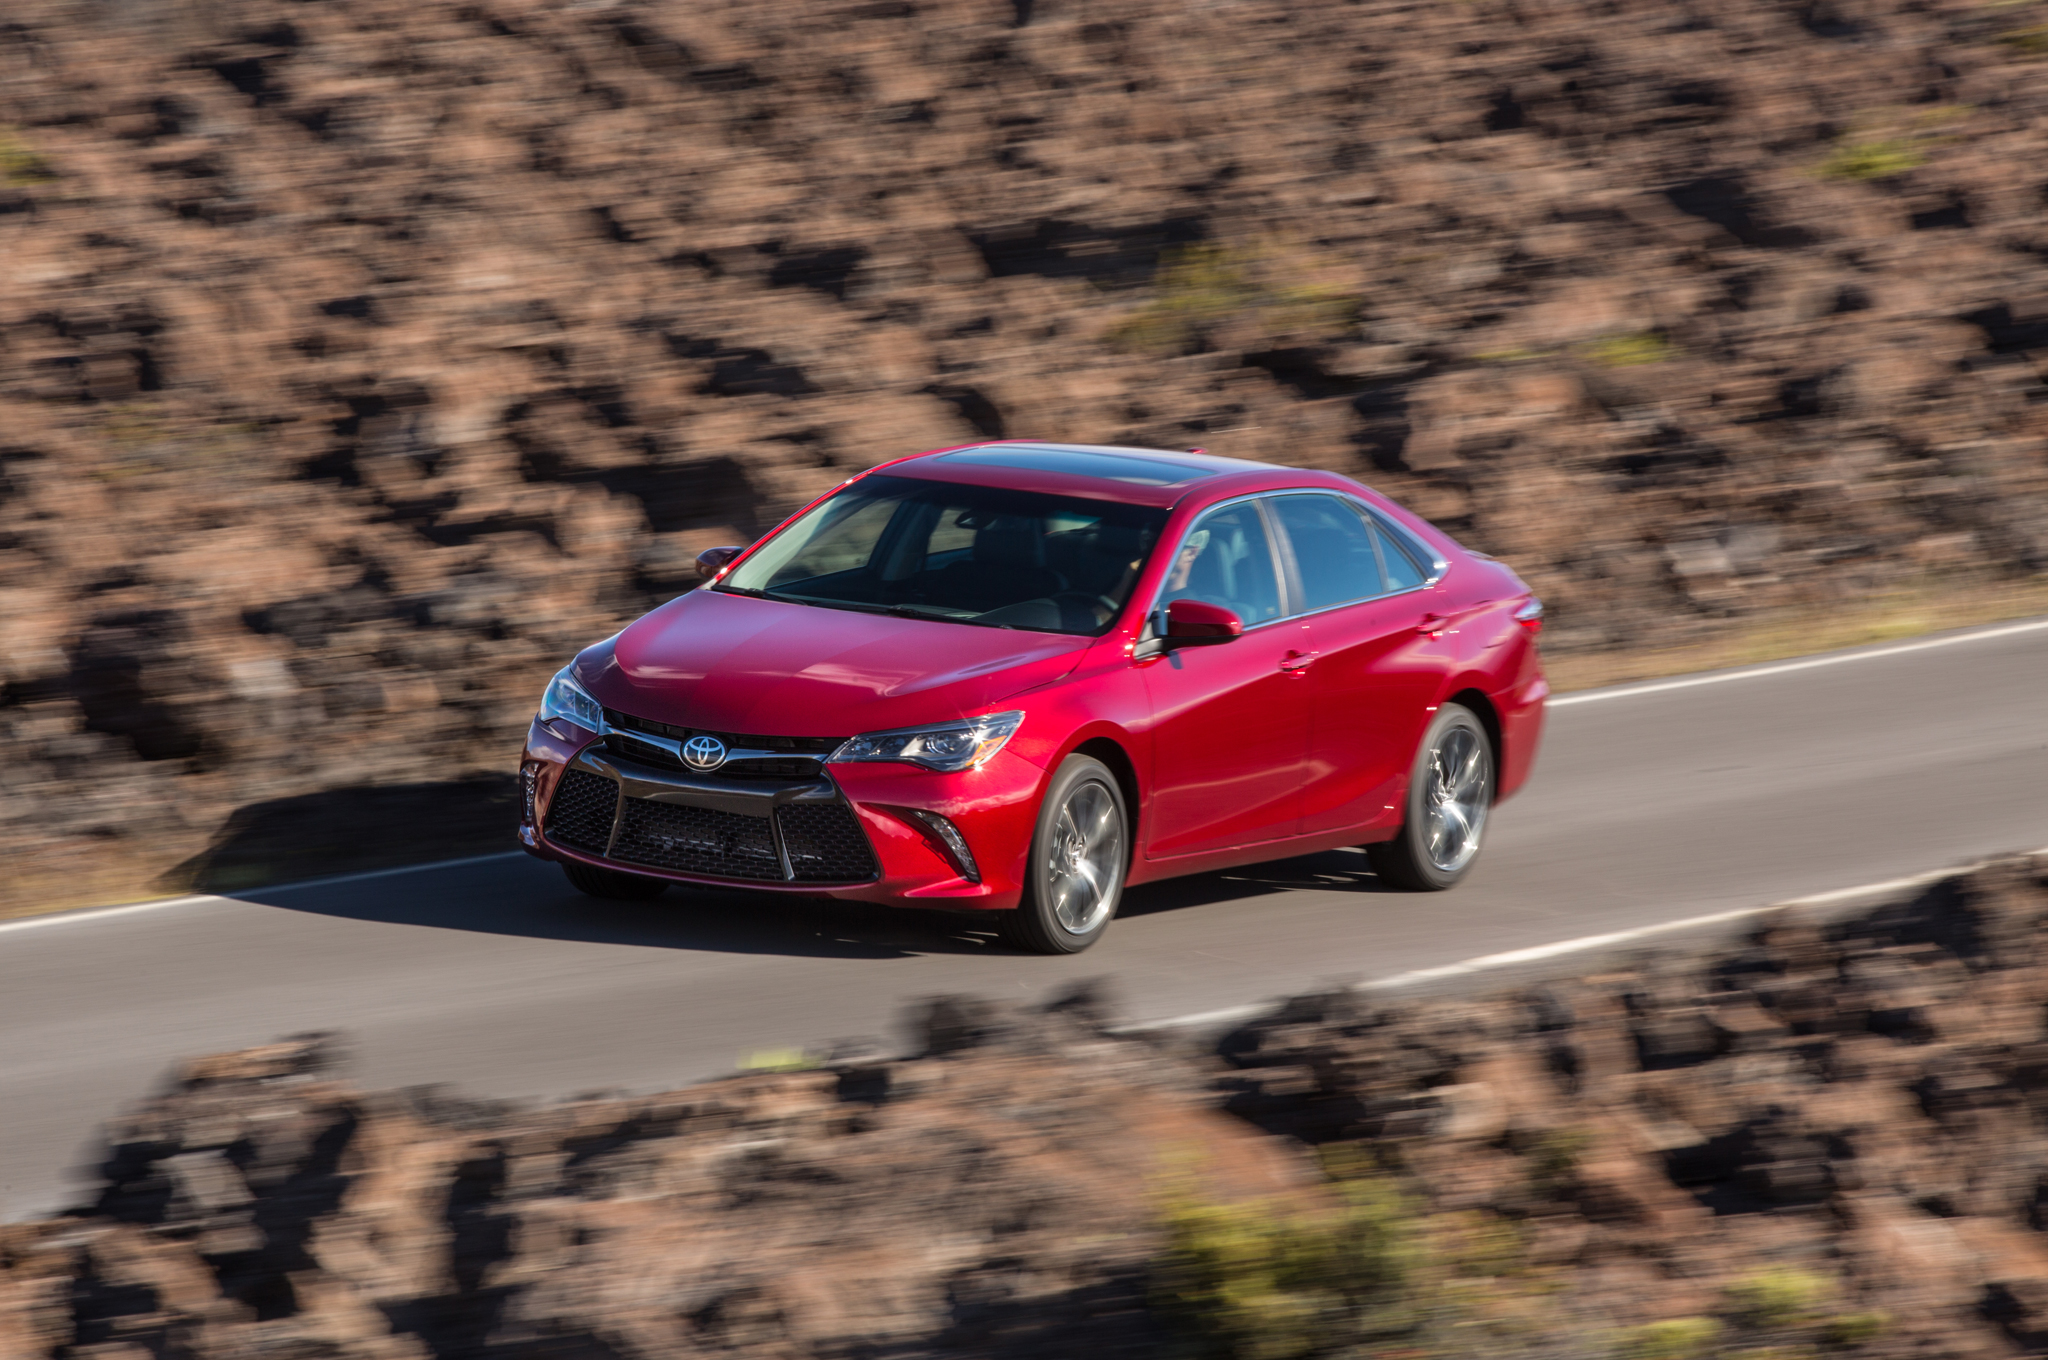 Toyota Camry Leads January 2015 Midsize Sales, Altima Close Behind